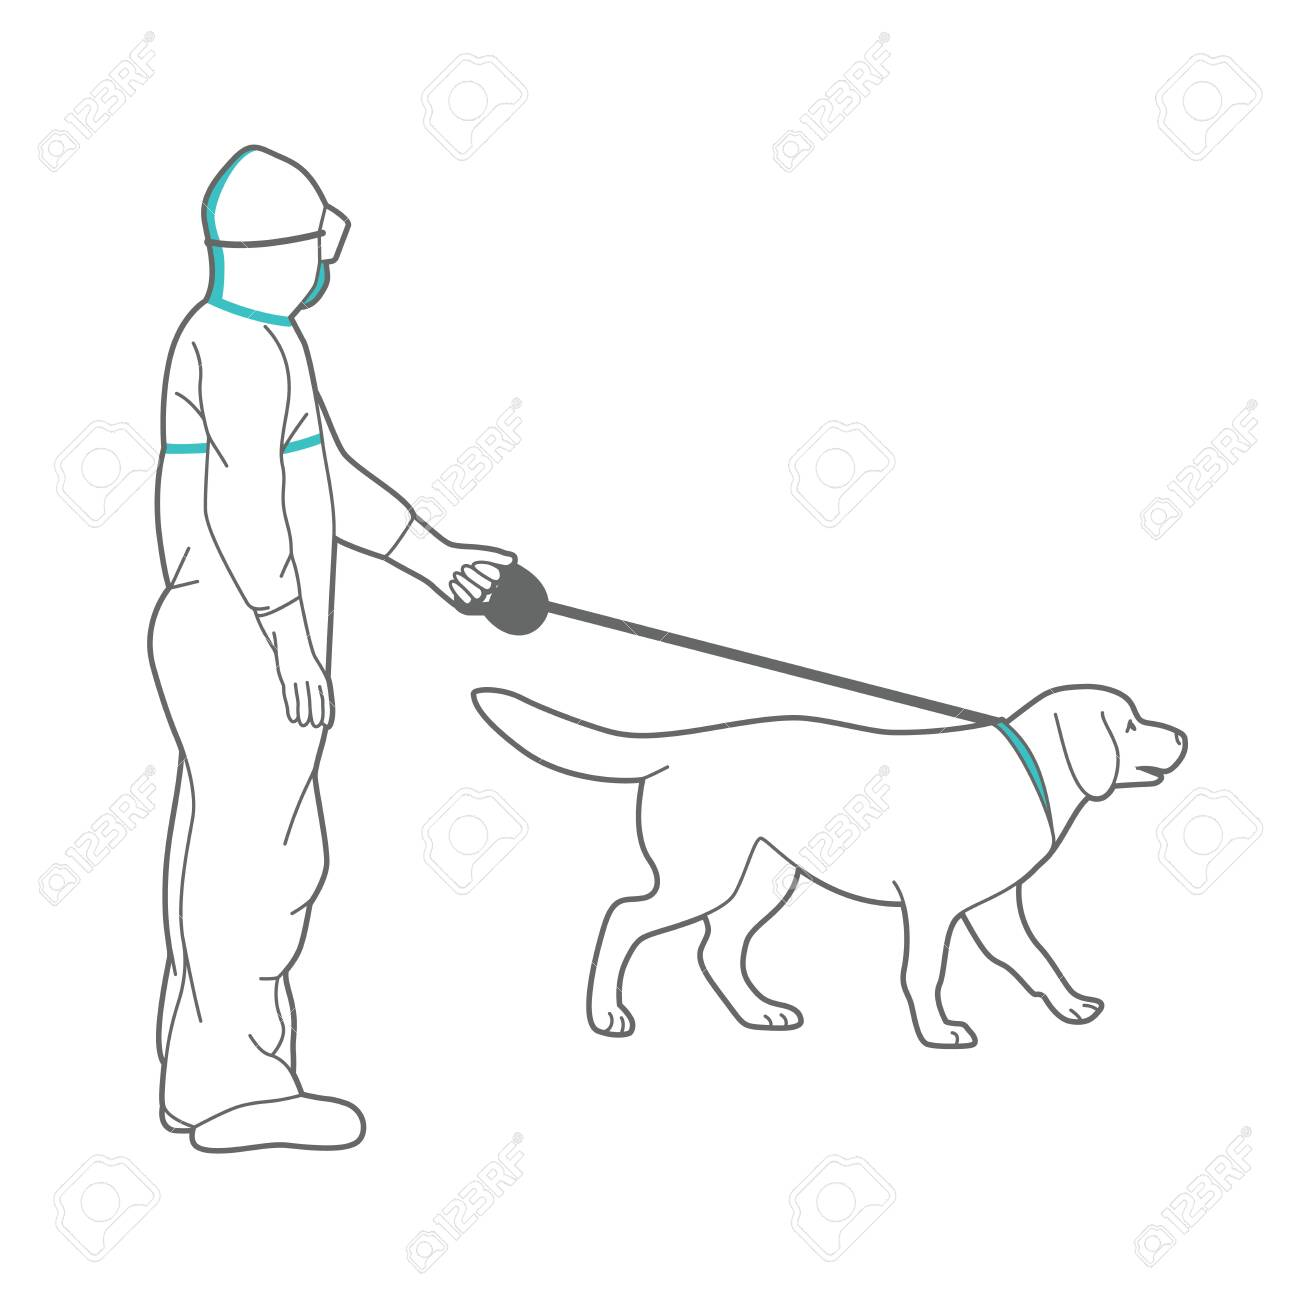 Man in protective suit and respirator is walking a dog. - 146217768